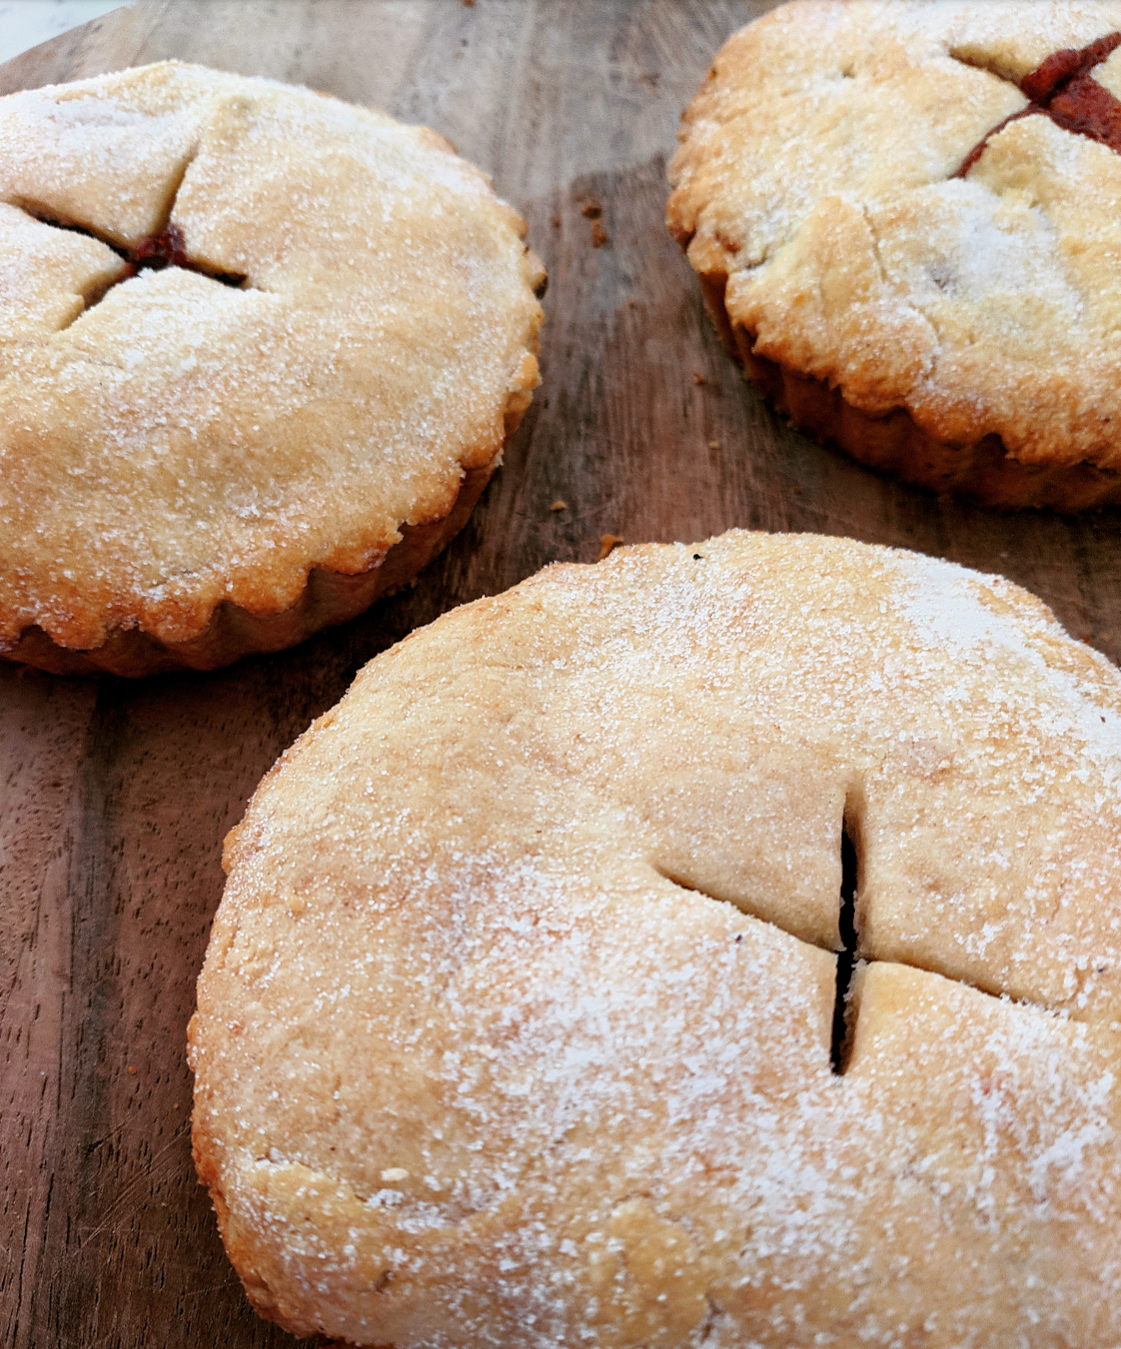 Vegan apple pies